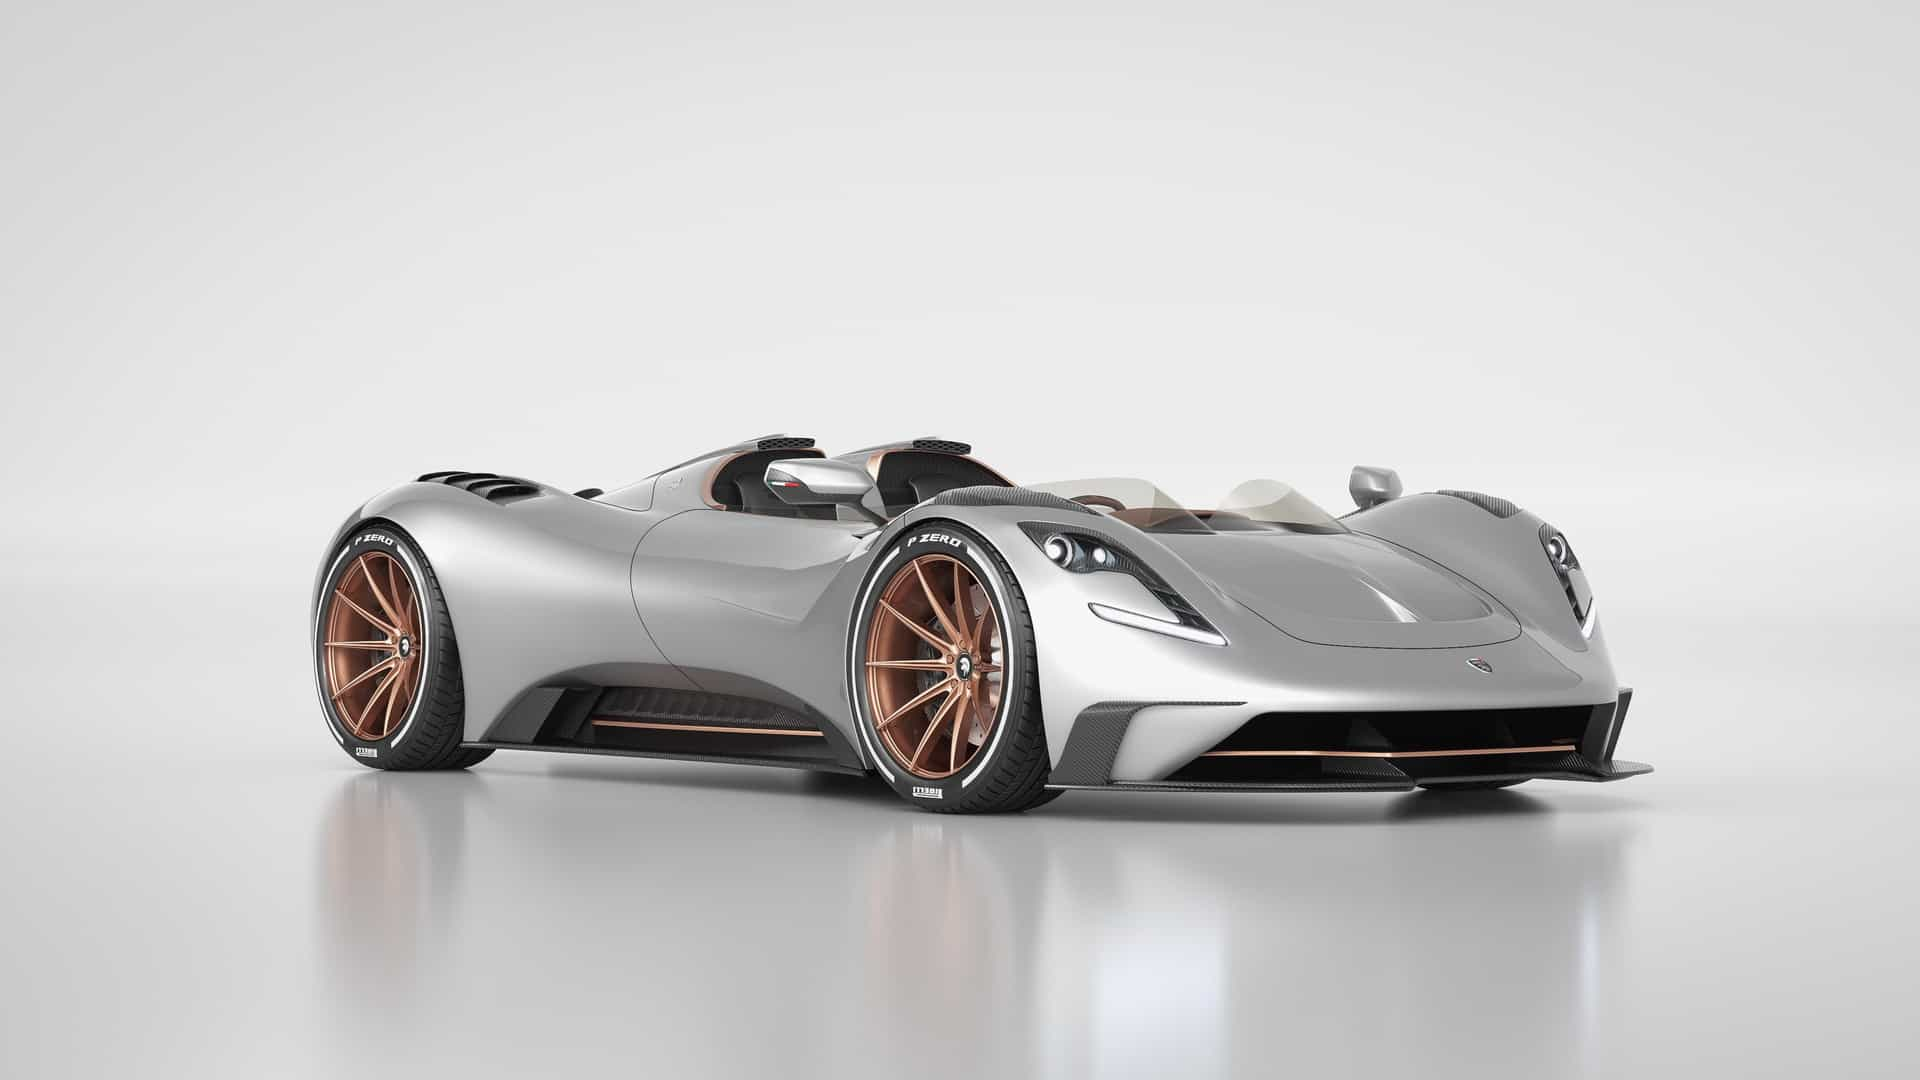 The Ares S1 Project Spyder Moves In For The Kill